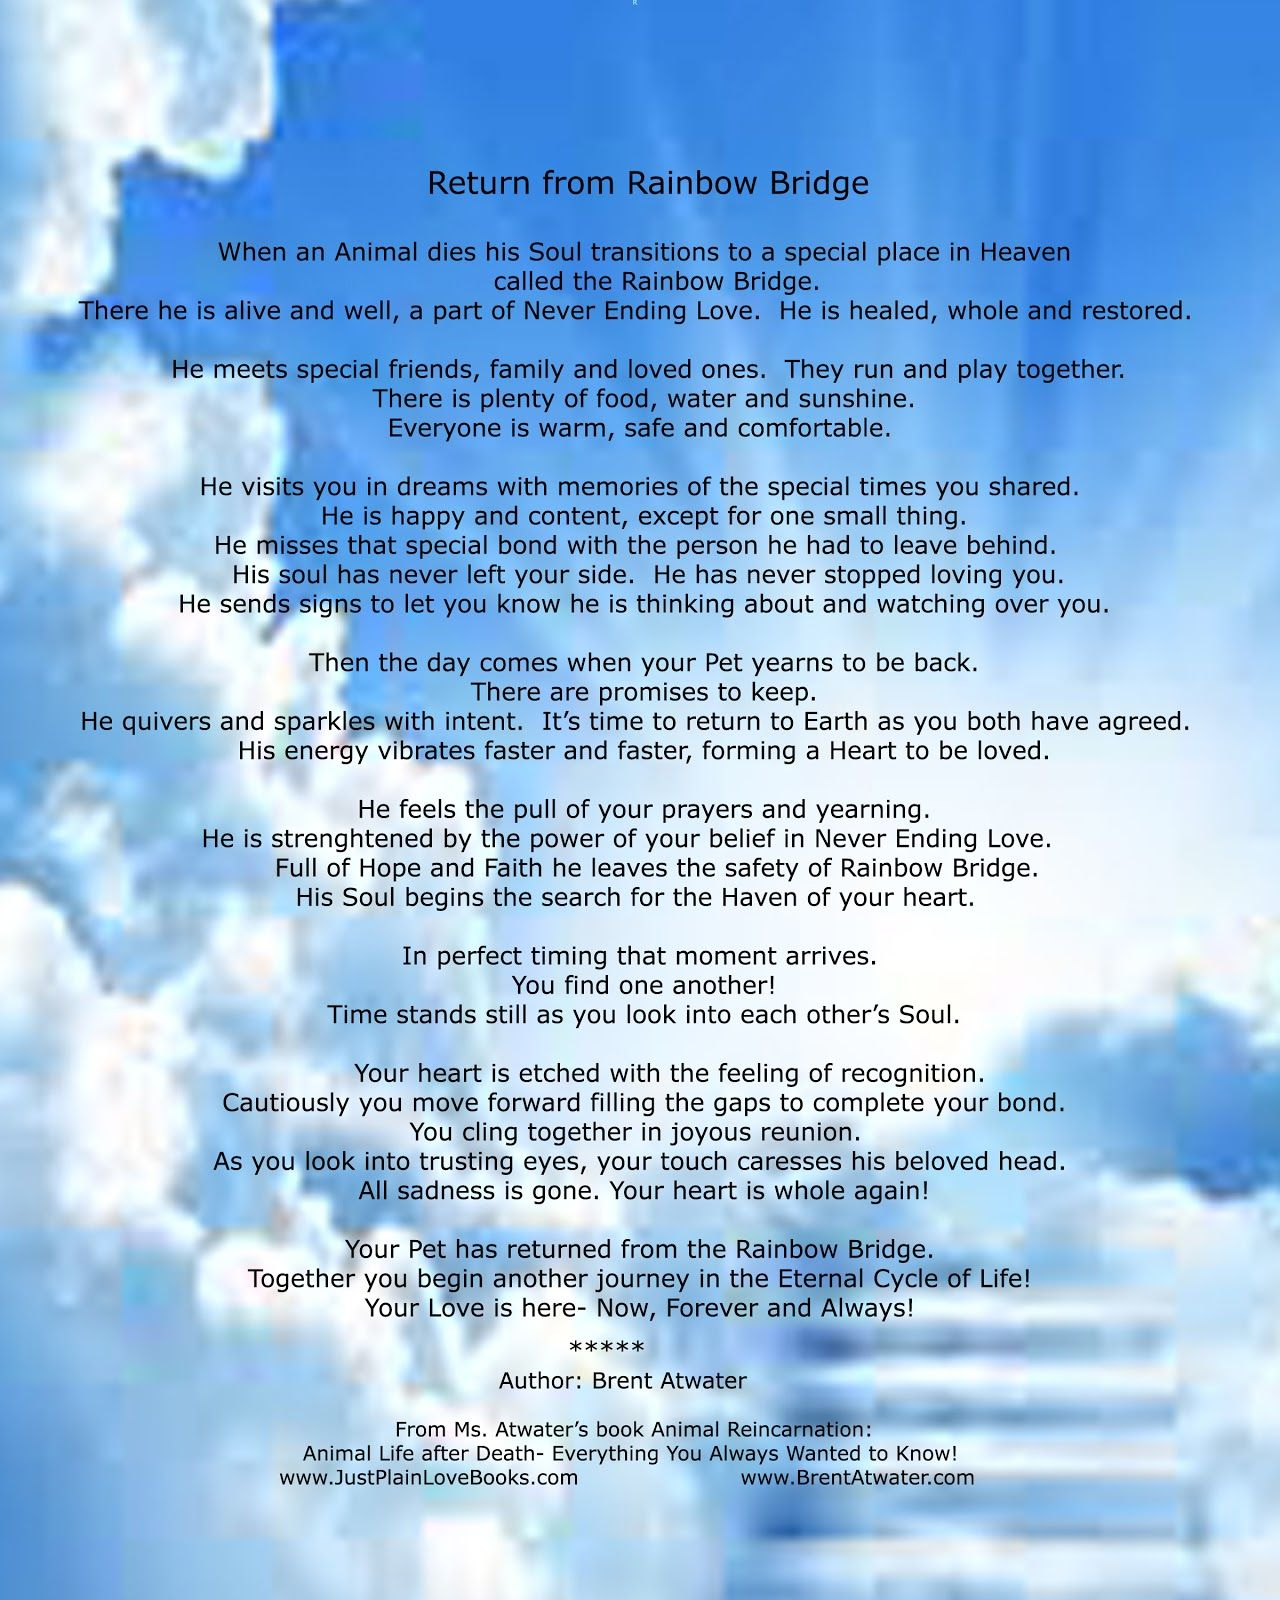 Animal In Spirit L Pet Spirit Animal Soul L Animal Heaven L Can Pets Come Back After They Die R Bridge Pet H Rainbow Bridge Poem Rainbow Bridge Dog Heaven